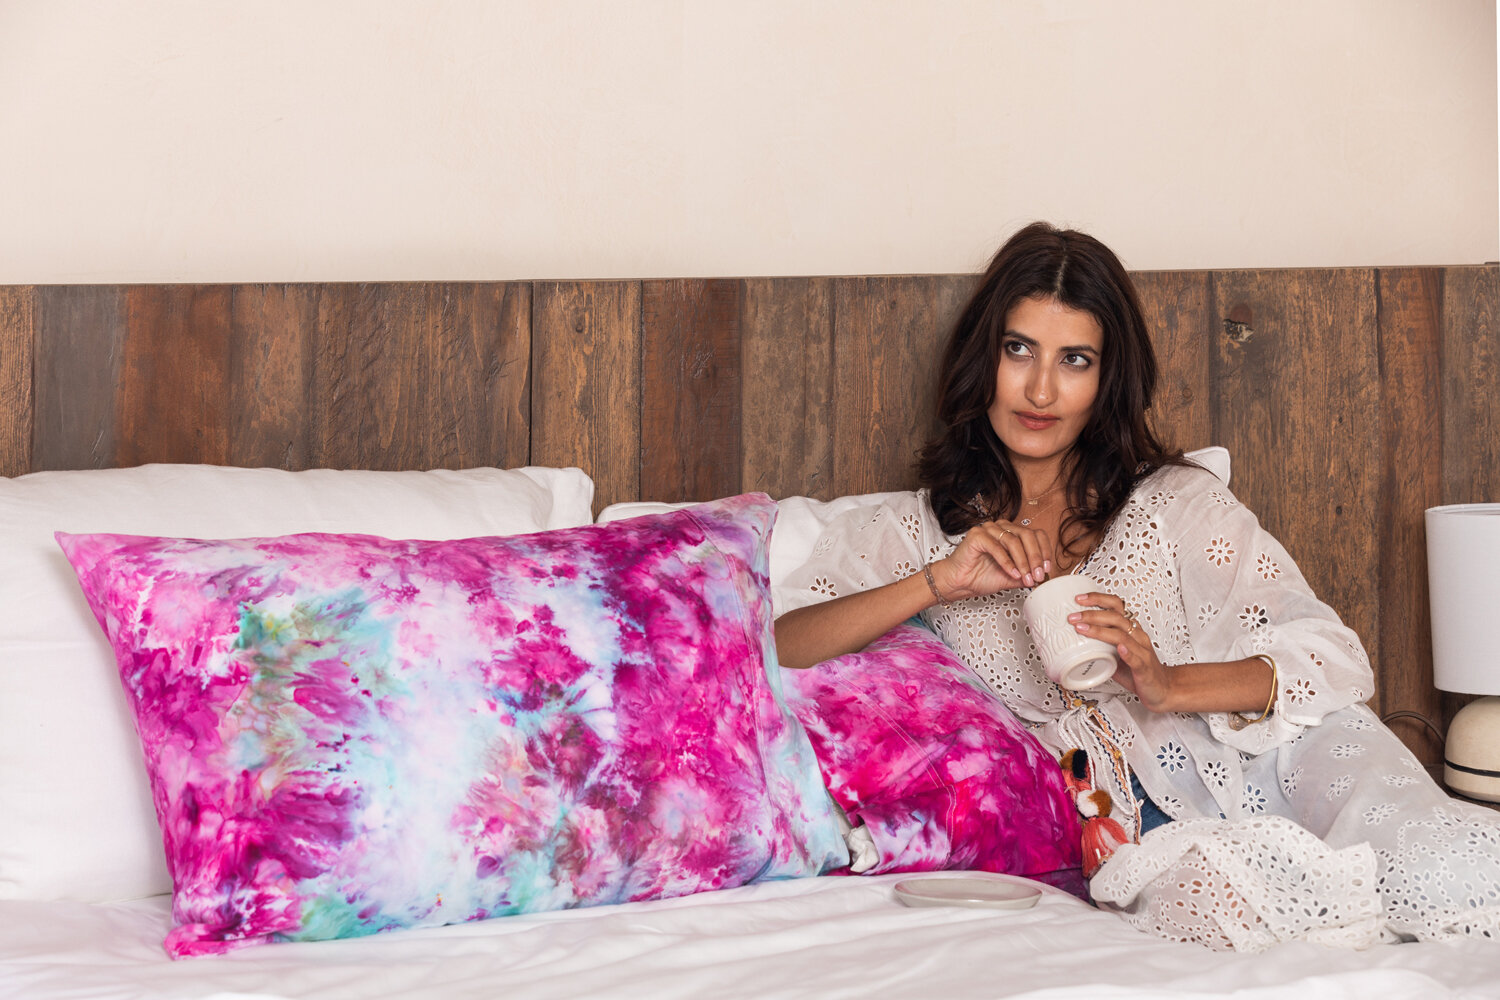 67_Jenna Carlie Photography_Agnes Crave Products_One Hotel.jpg